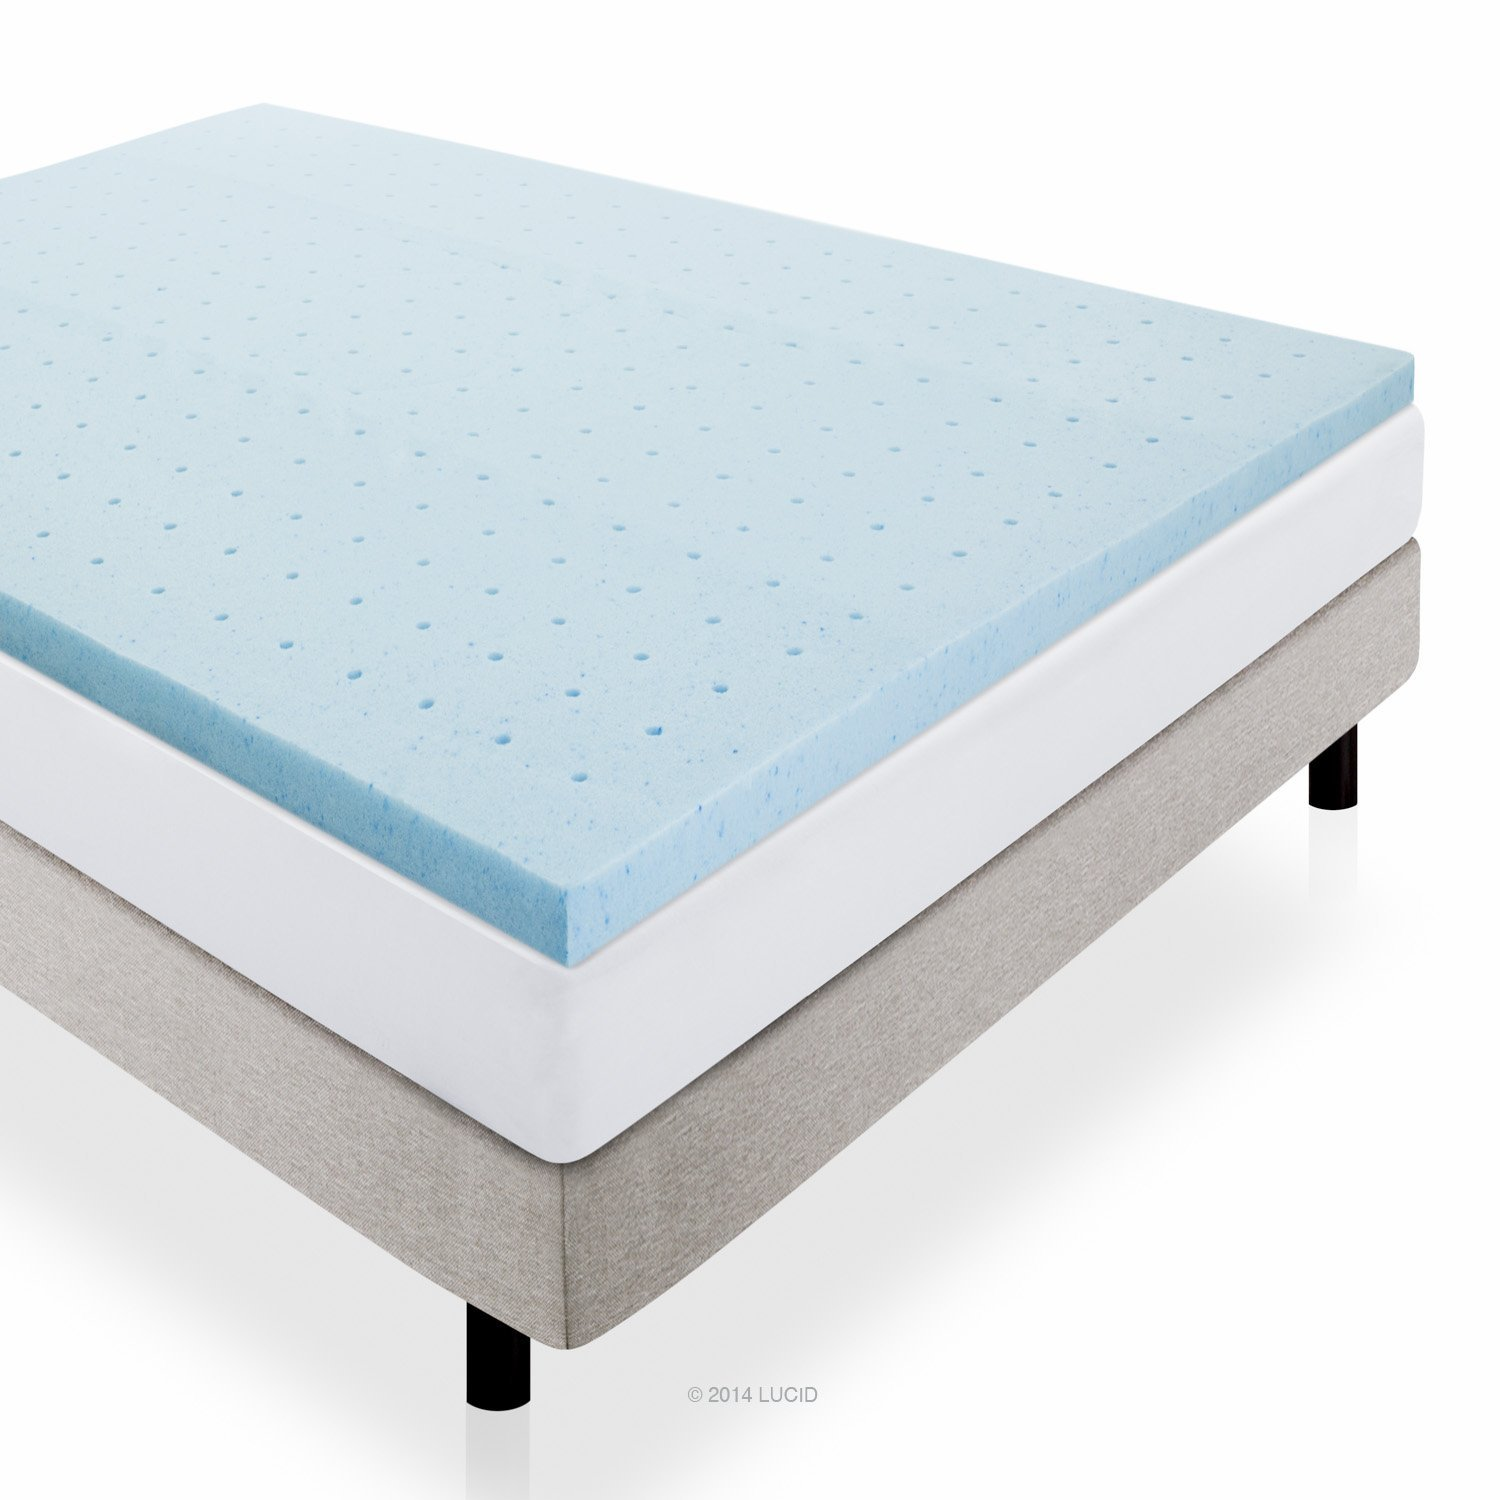 Lucid 2 inch gel infused ventilated memory foam mattress topper review Top rated memory foam mattress